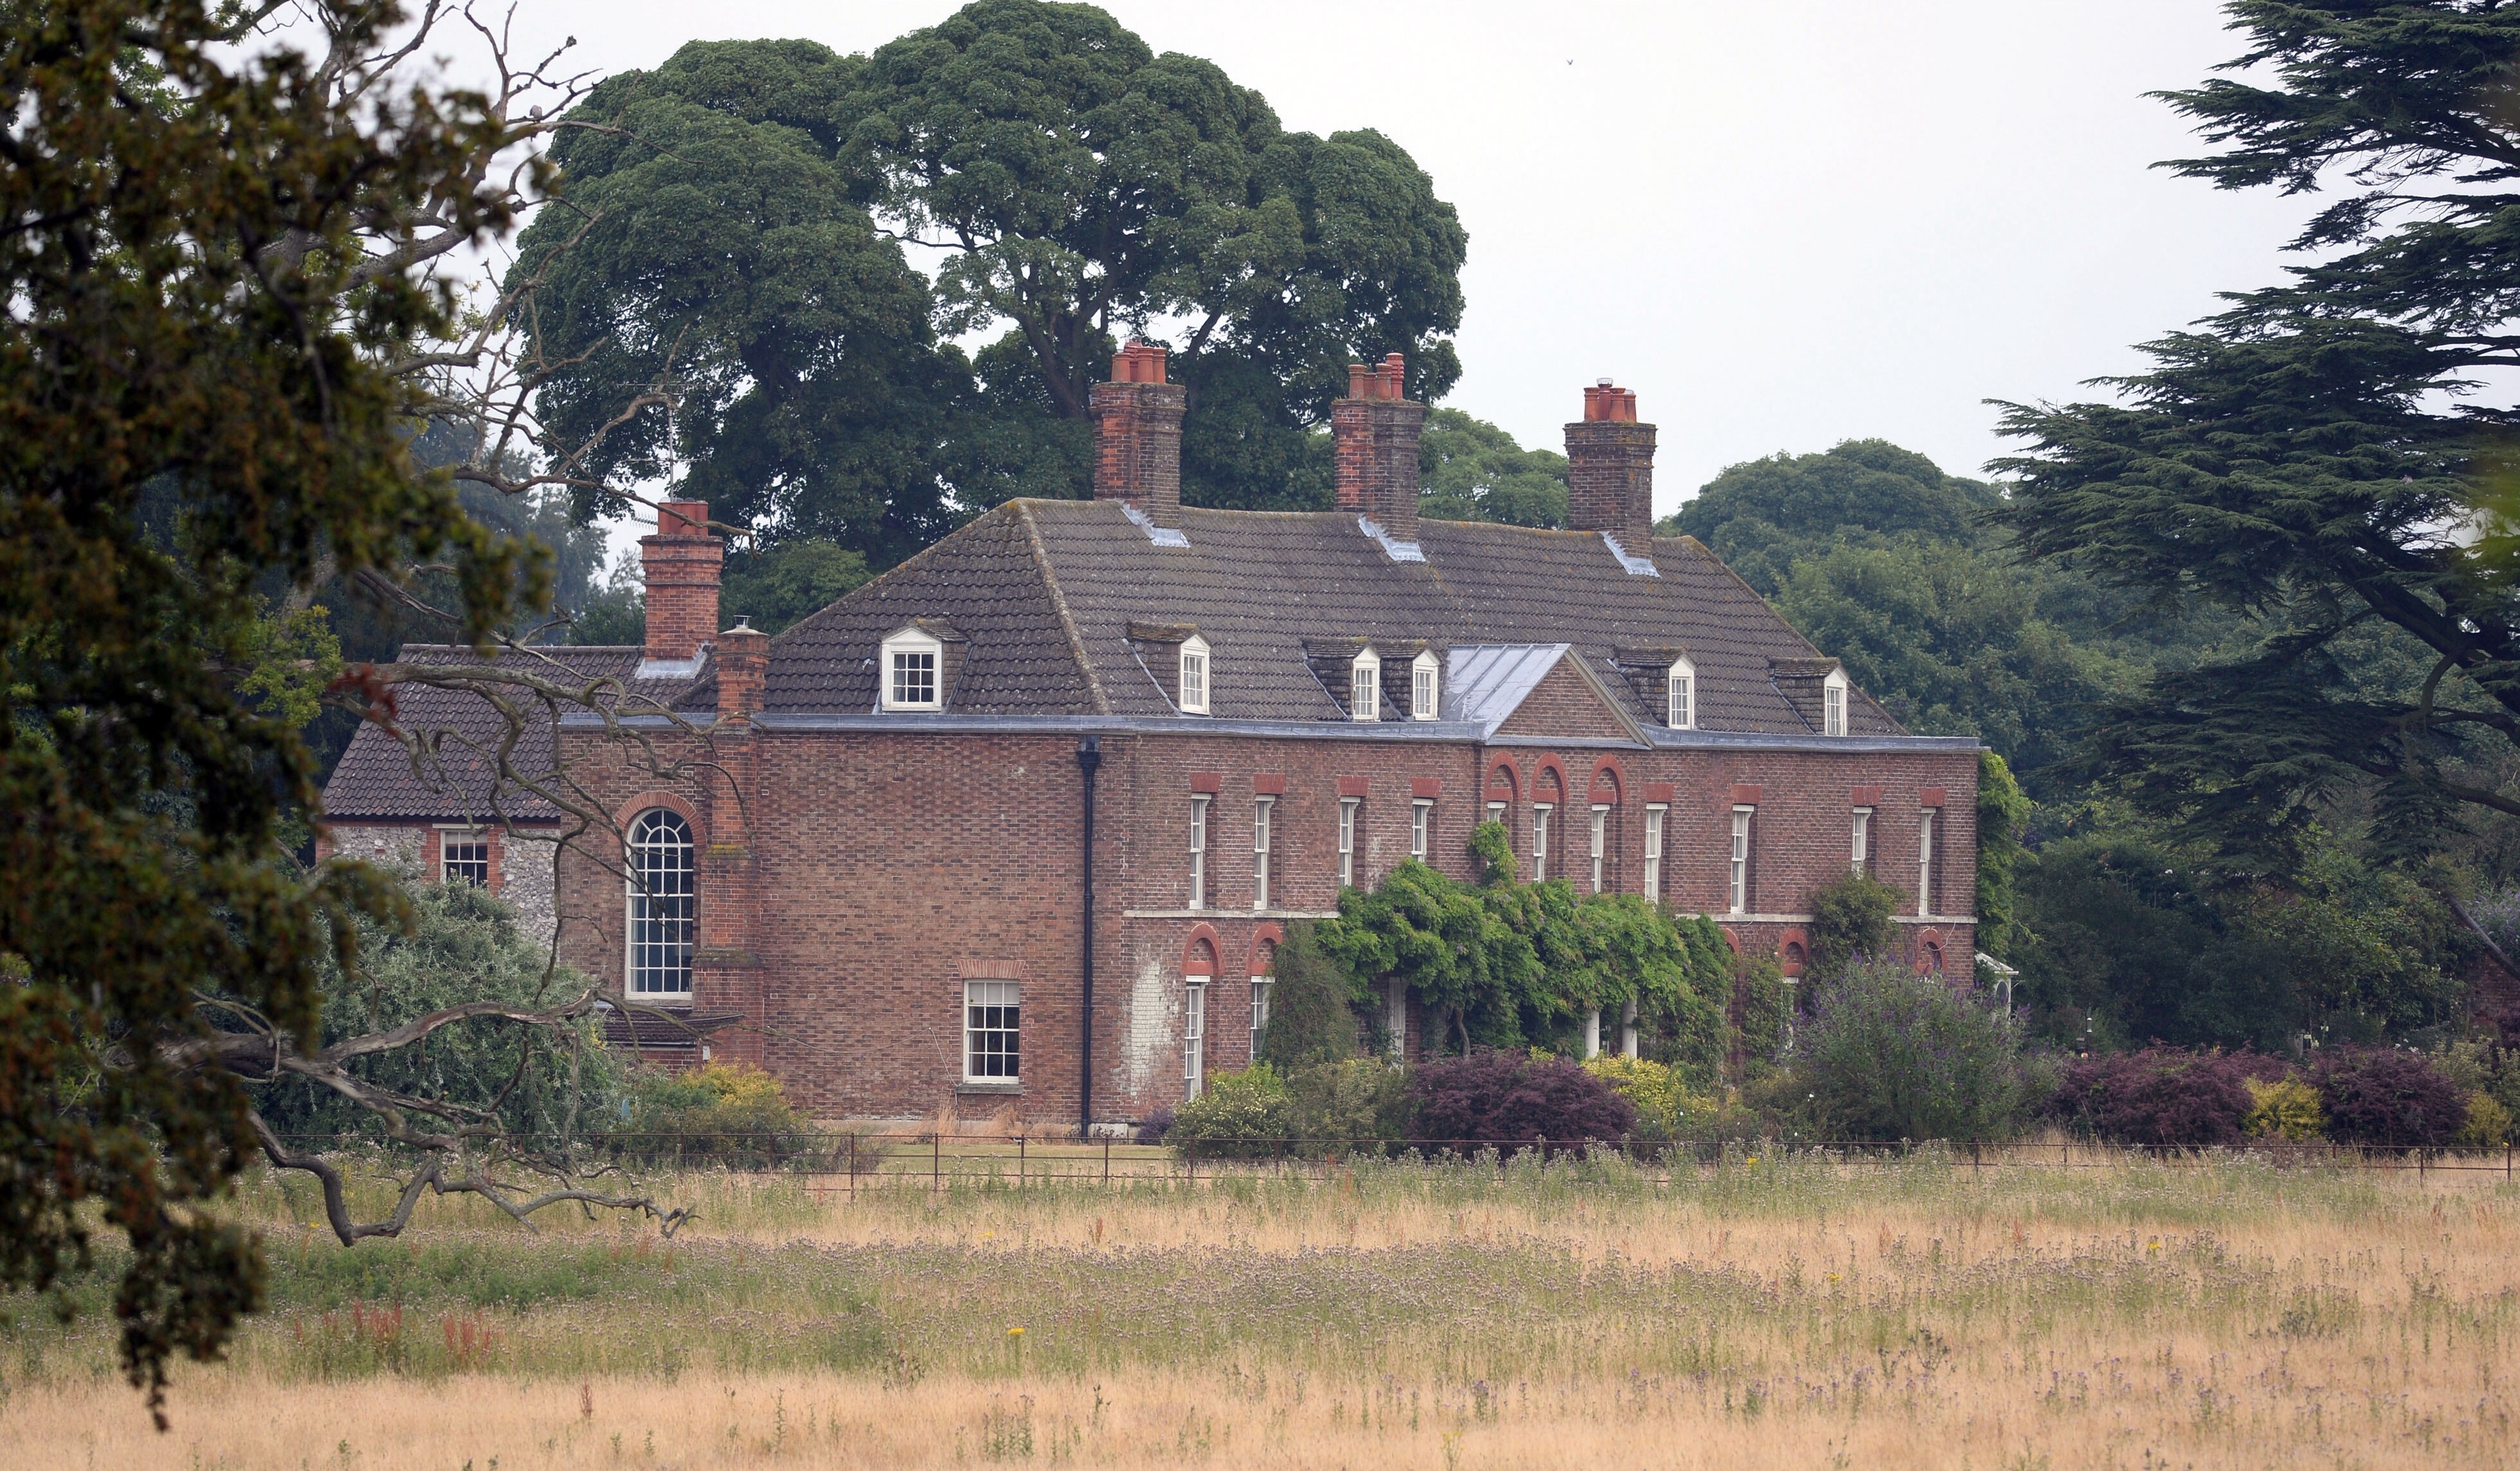 red brick Georgian house is Anmer Hall, William and Kate's Norfolk home